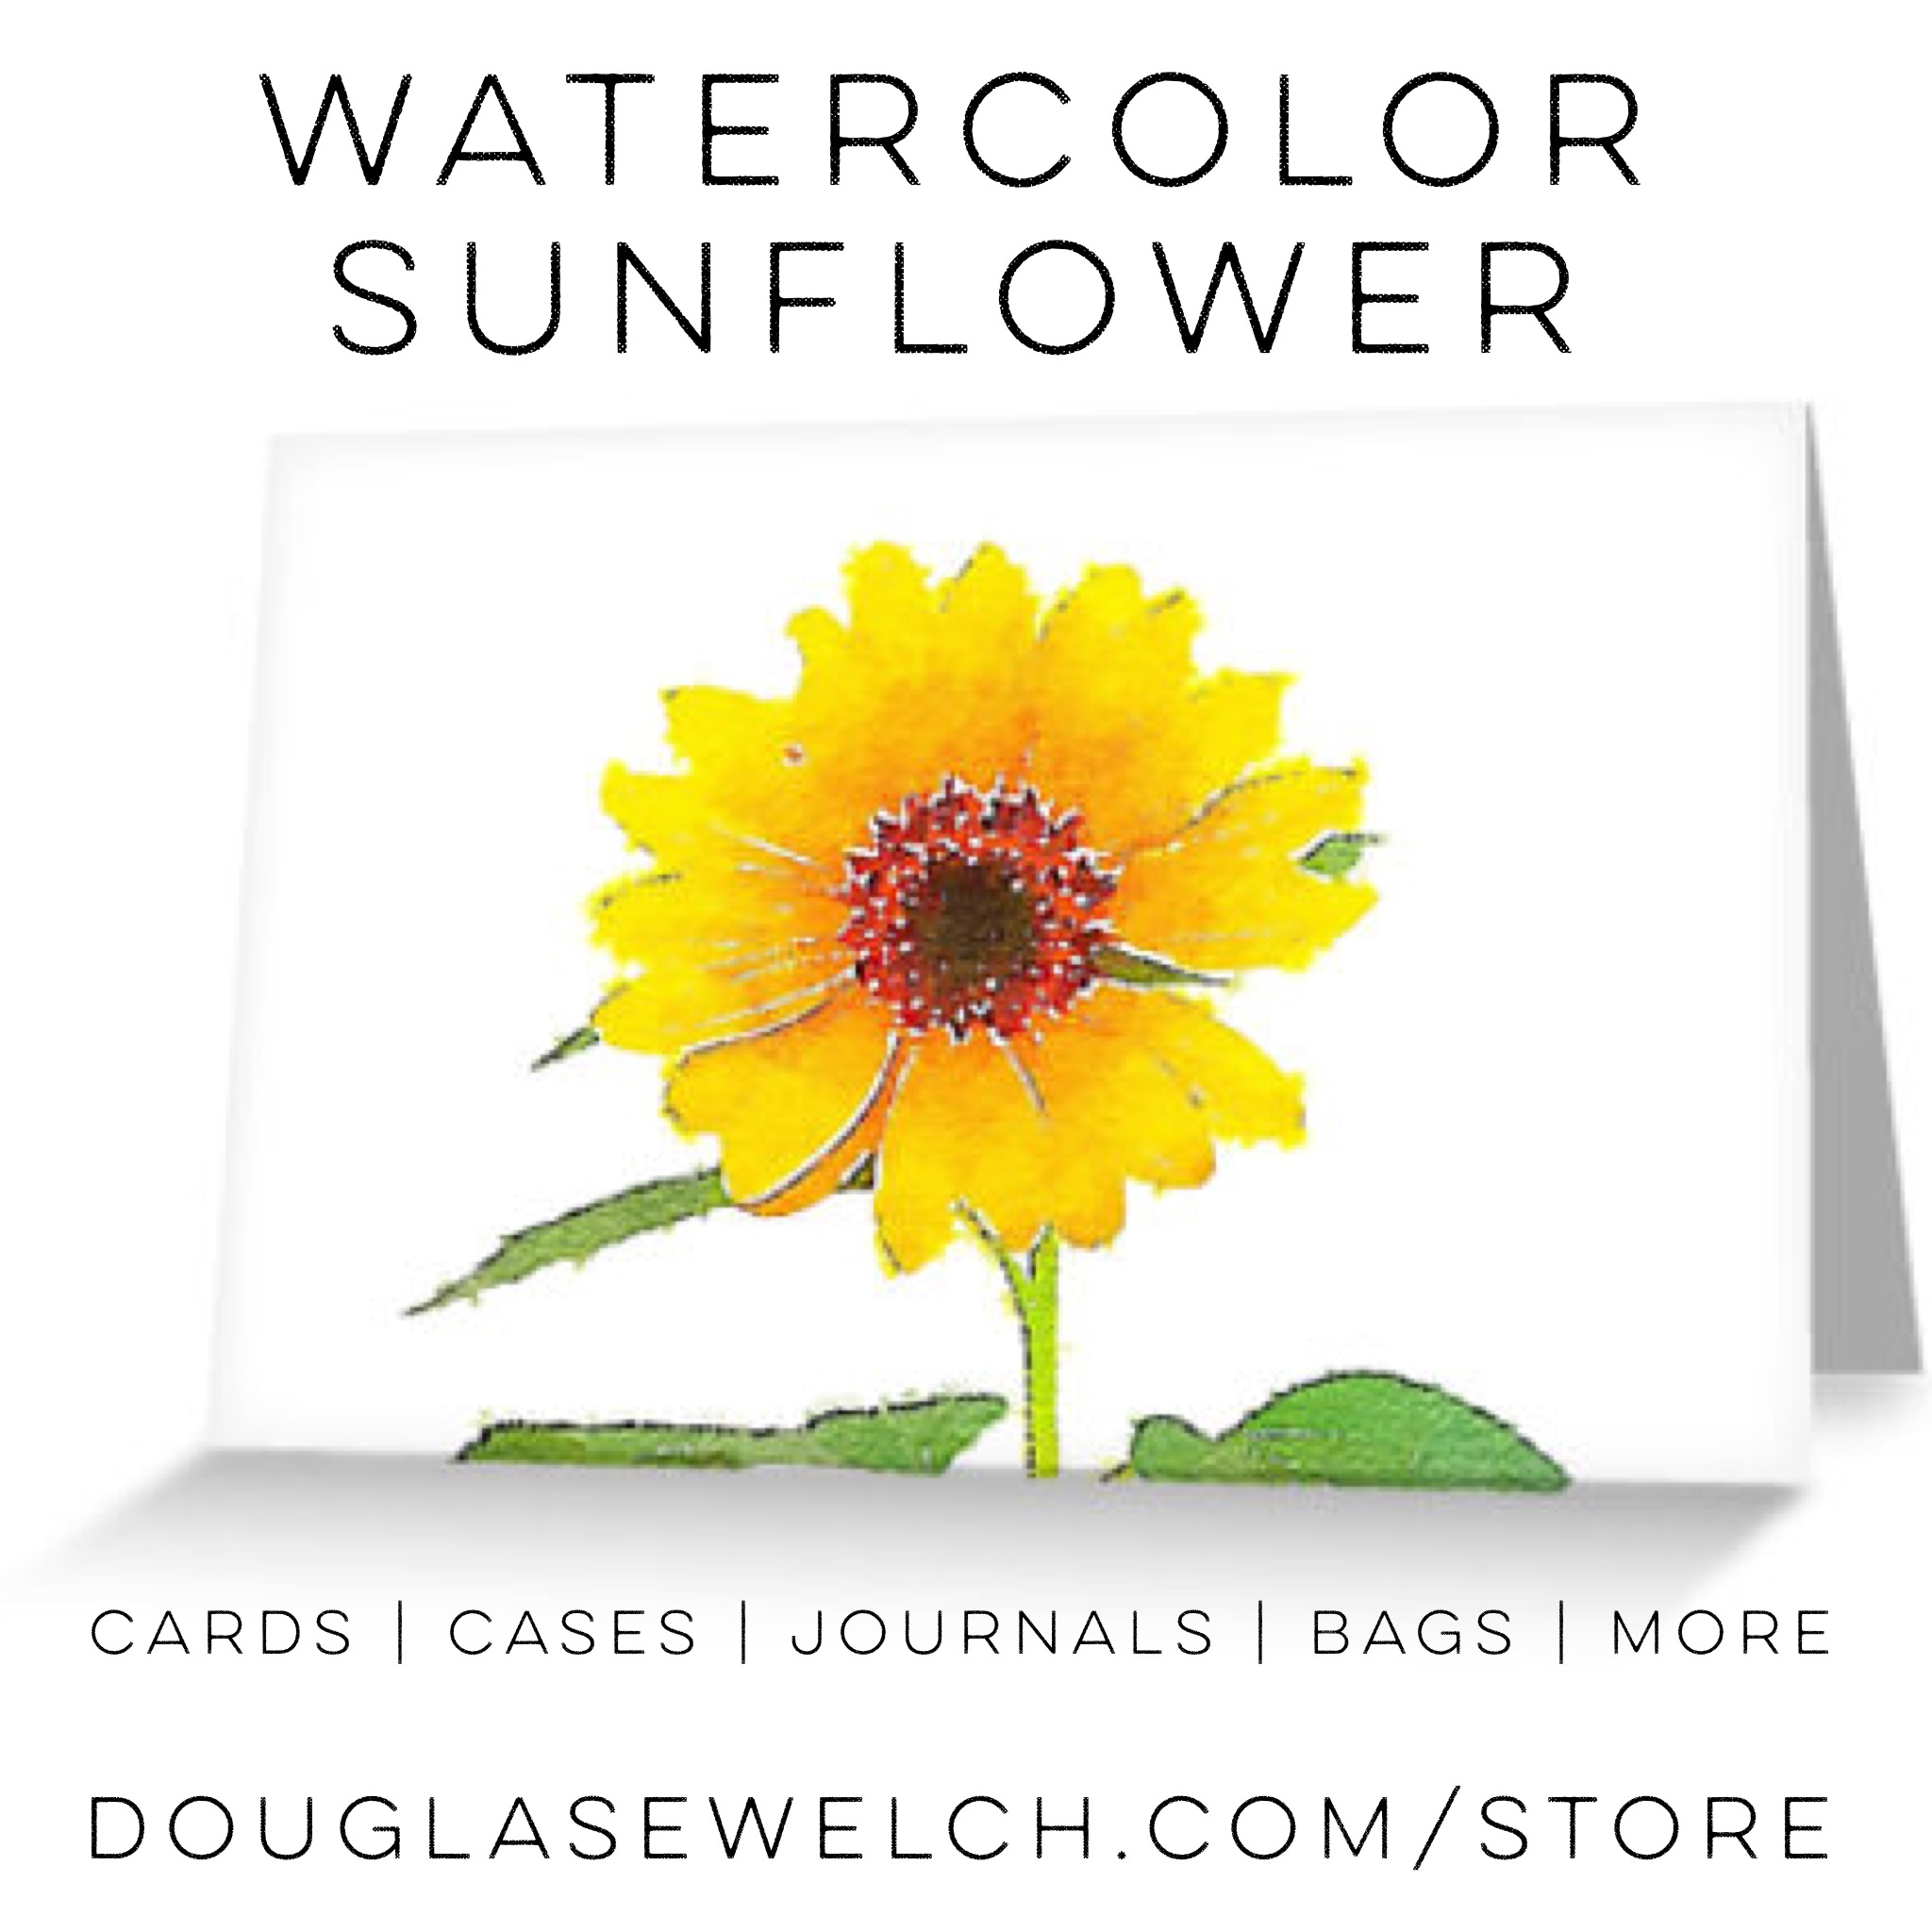 Share these Watercolor Sunflower cards and more exclusively from Douglas E. Welch